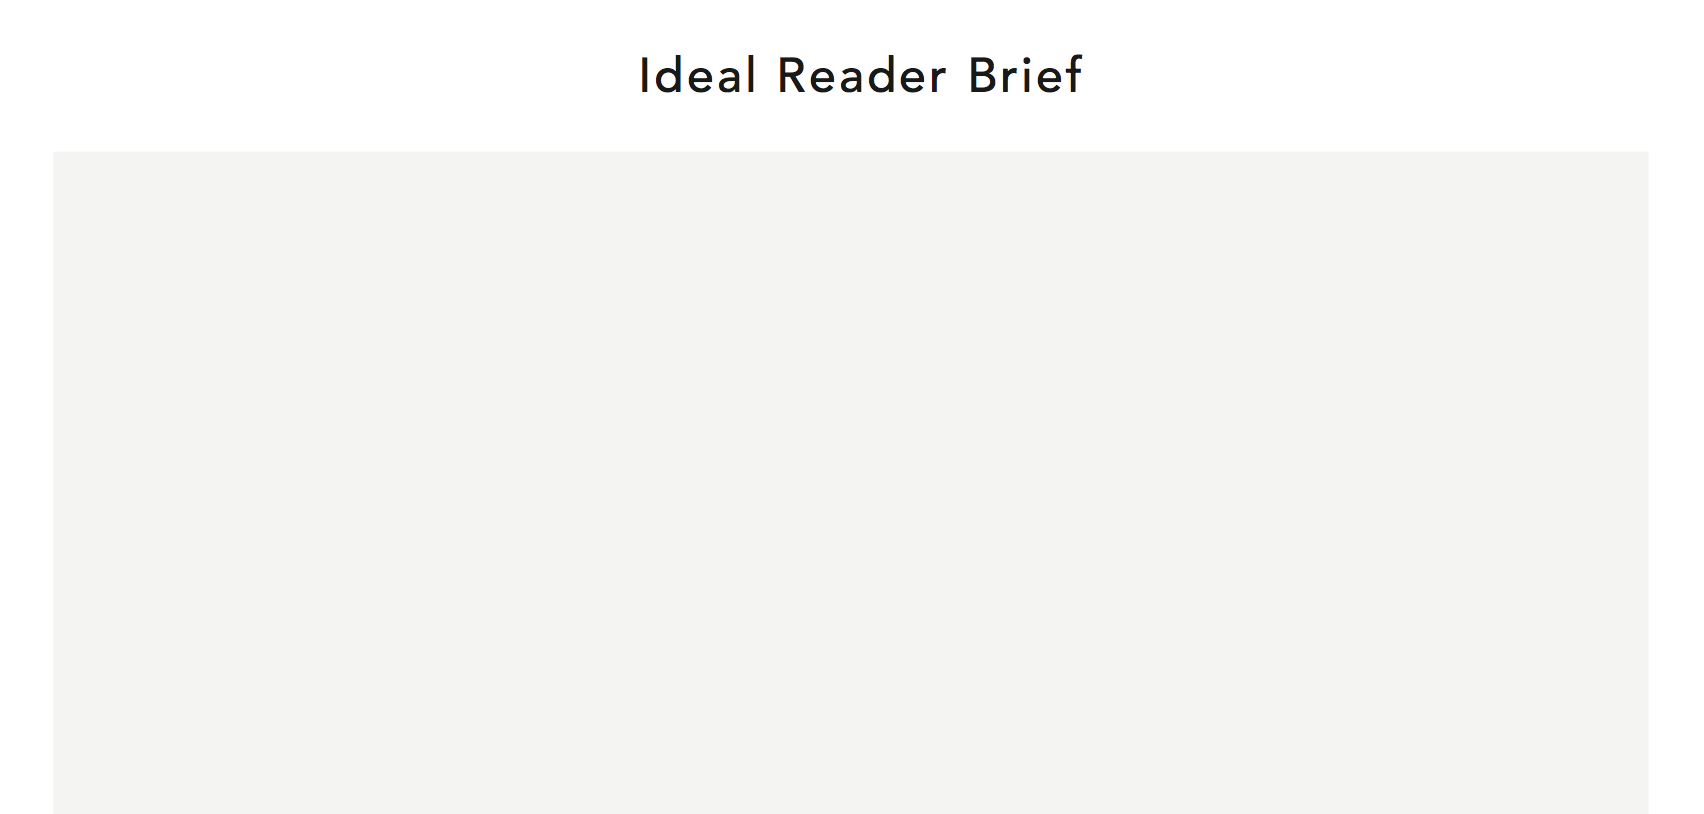 THE ULTIMATE GUIDE TO CREATE ACCURATE IDEAL READER (CUSTOMER) PROFILES FOR YOUR BLOG AND BUSINESS